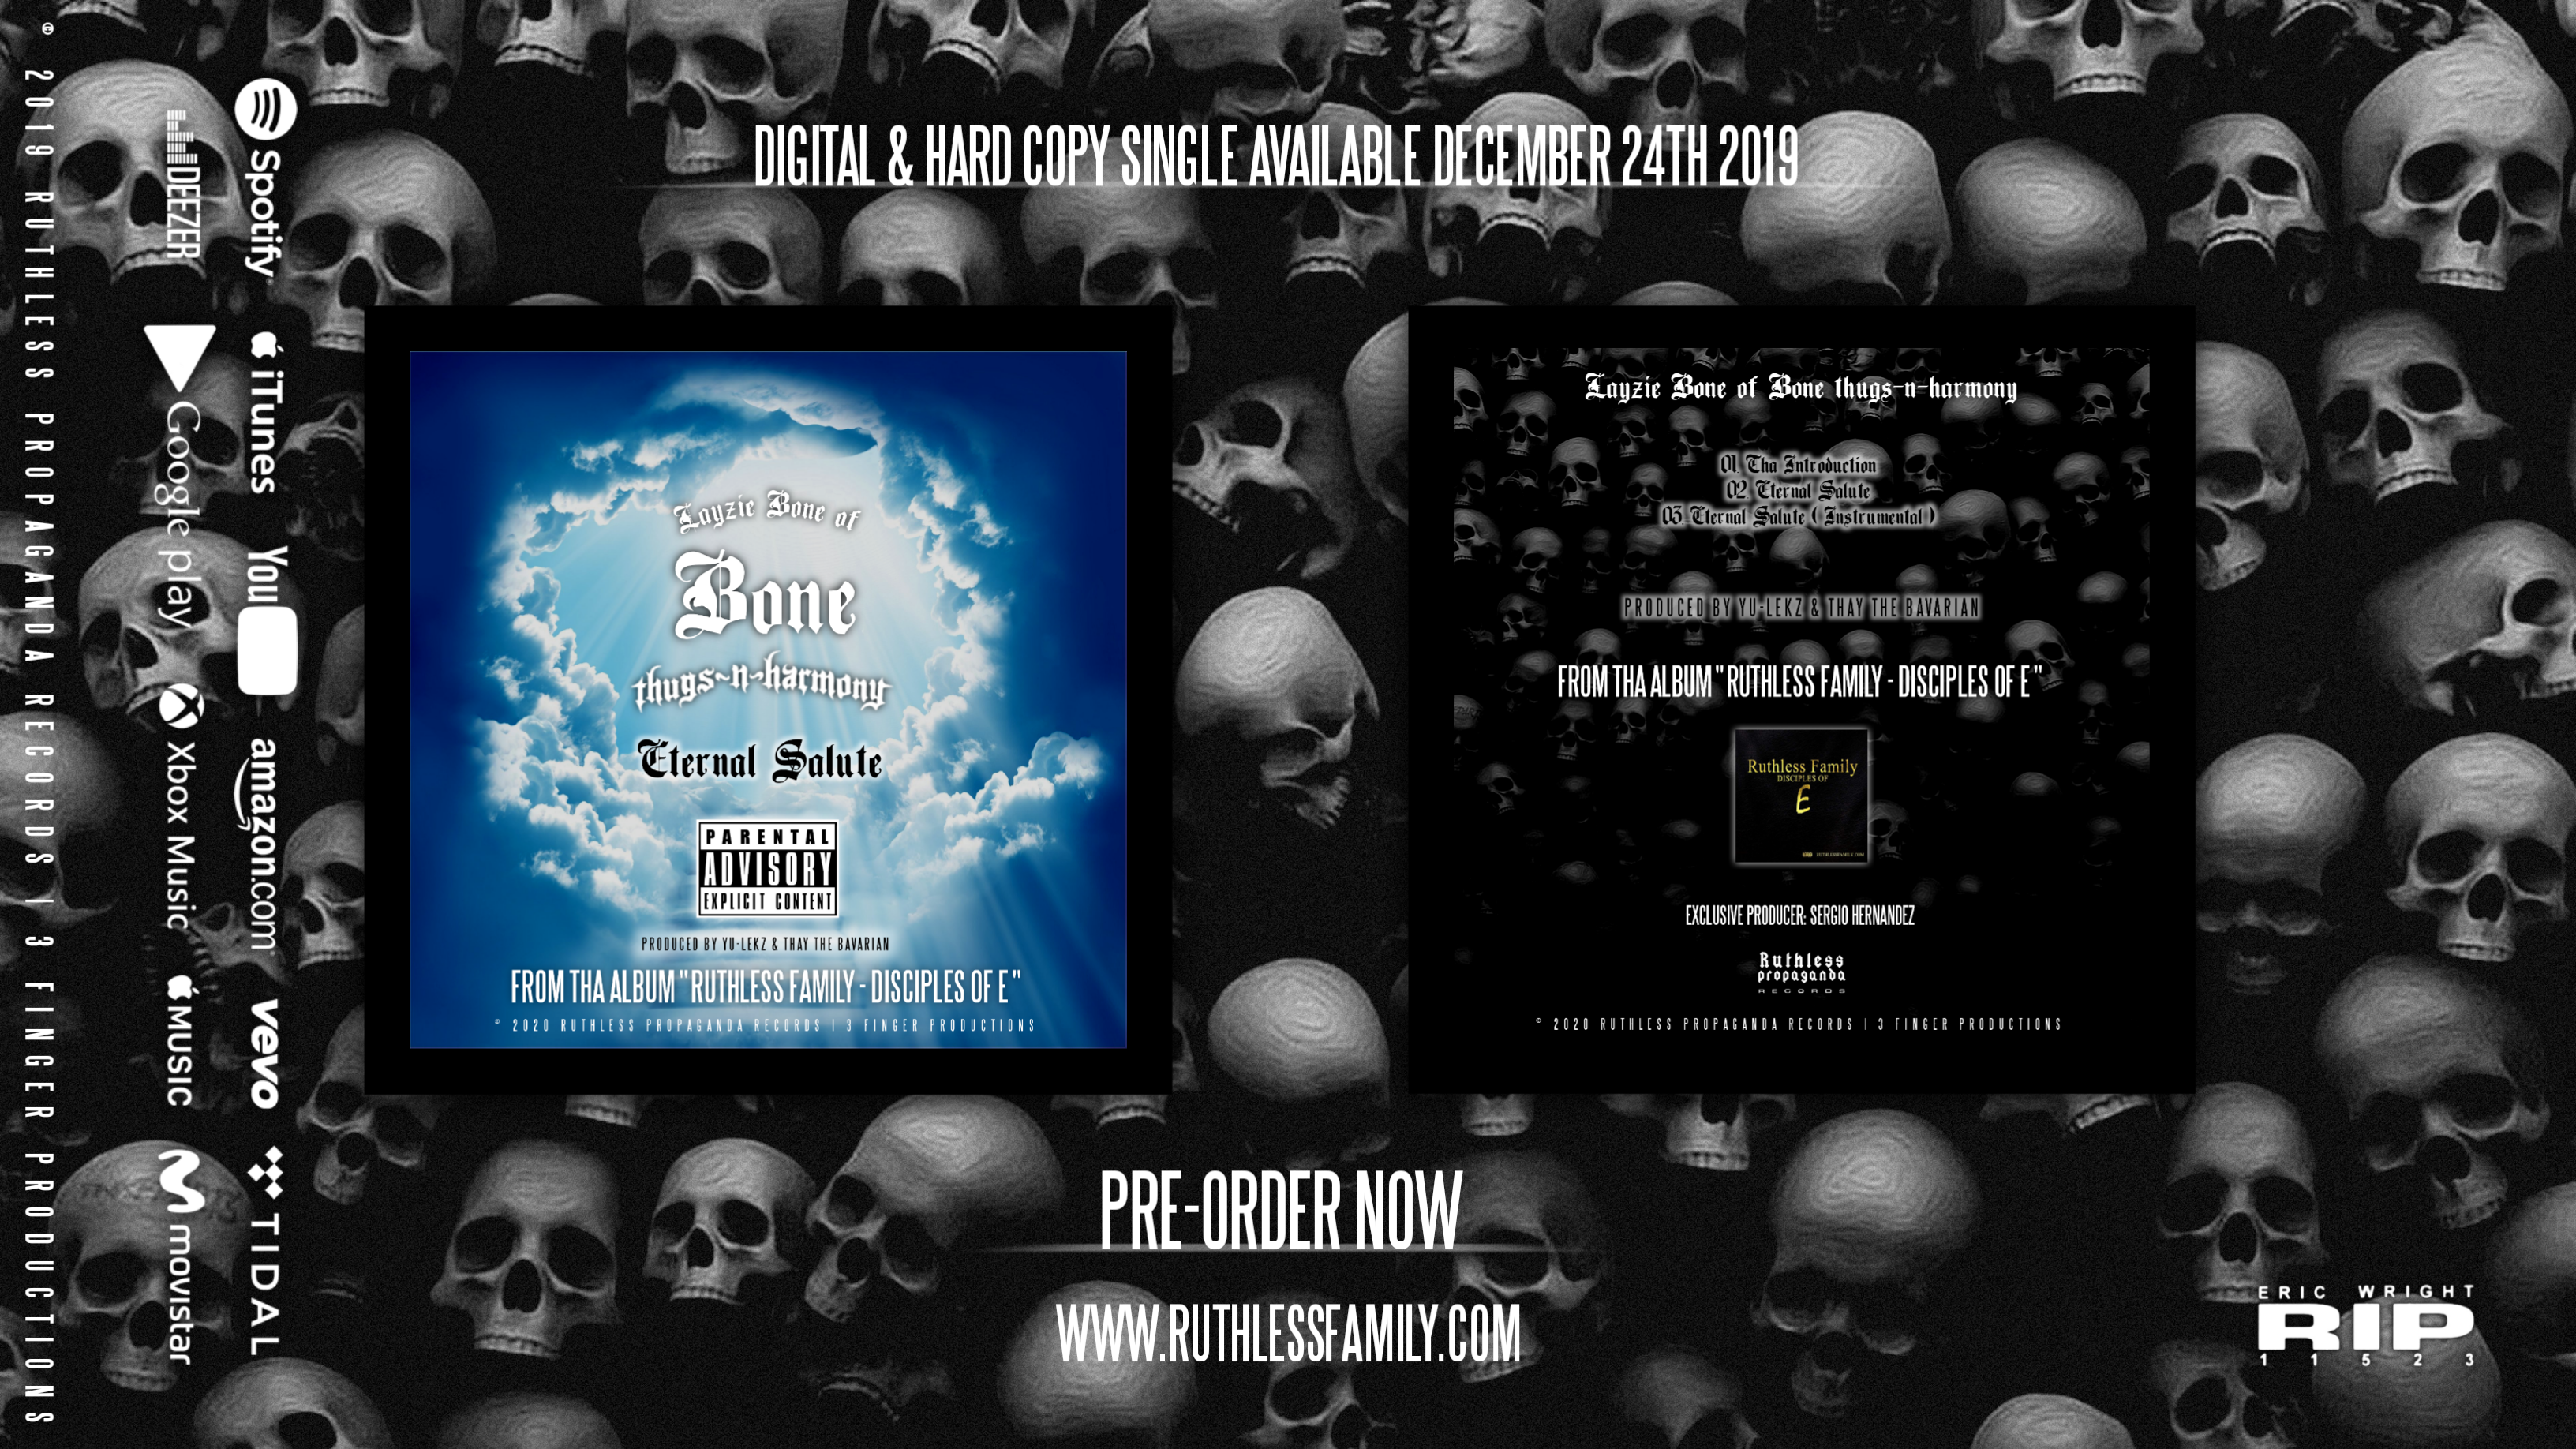 Layzie Bone - Eternal Salute - Single ( Promo Ads 1 )